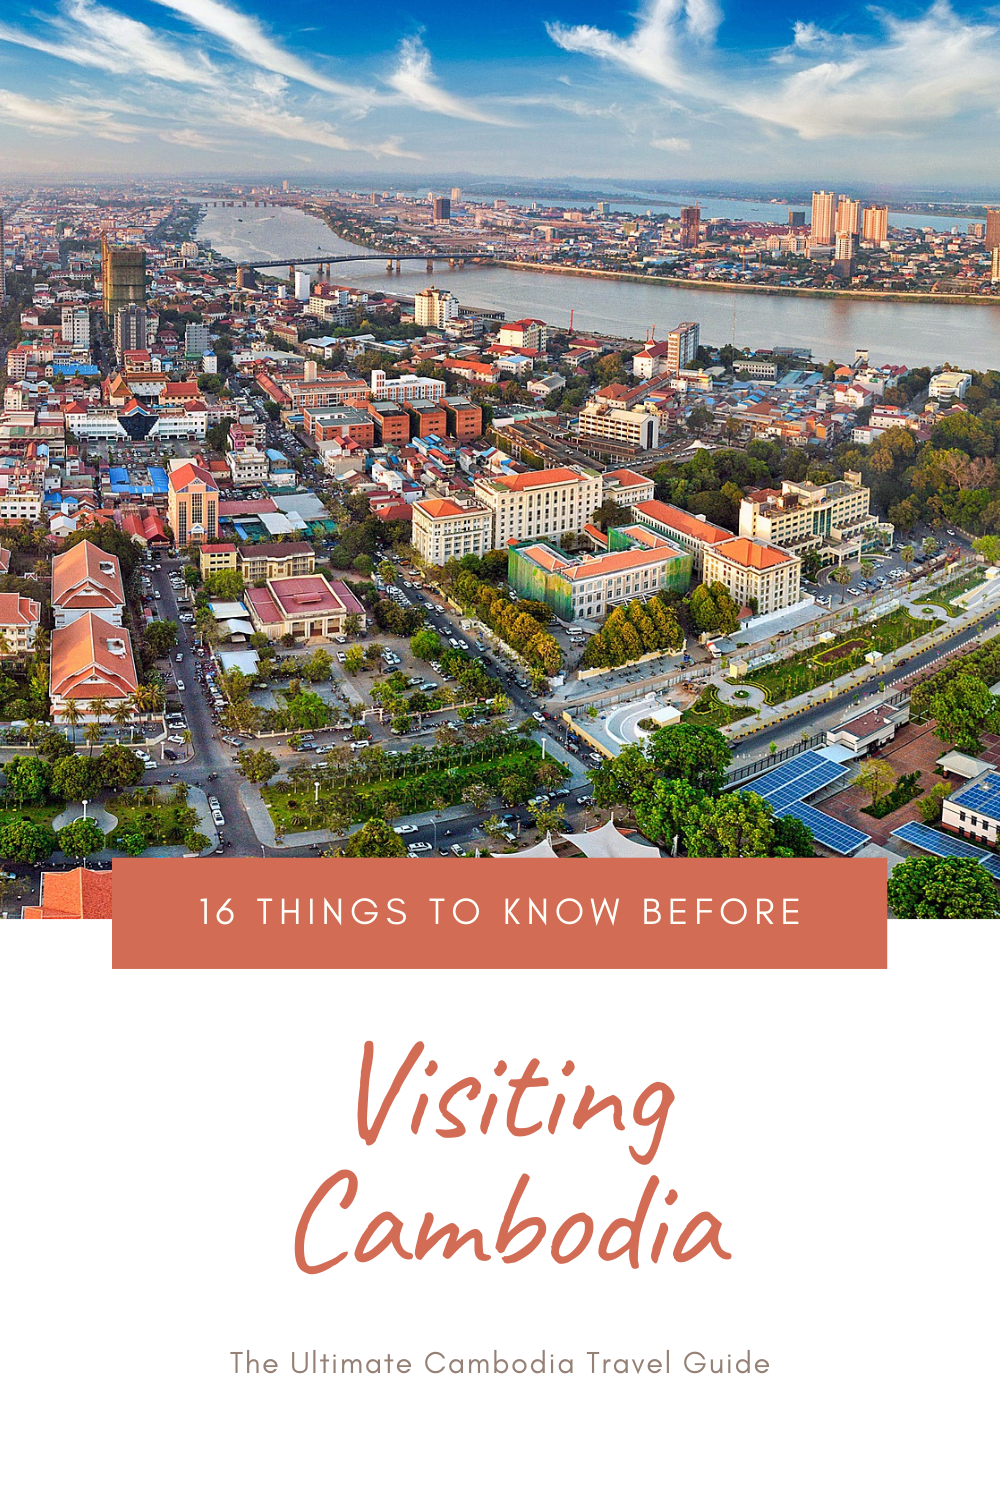 Not sure what to do in Cambodia this summer? Then check out this amazing local's guide to Cambodia! It's filled with some amazing things to do in Cambodia, expert Cambodia tips about where to go in Cambodia, and what to do in Cambodia if you're planning a Cambodia itinerary anytime soon. Because between Angkor Wat, Phnom Penh, and the beautiful beaches, there are a lot of amazing things to do in Cambodia right now!